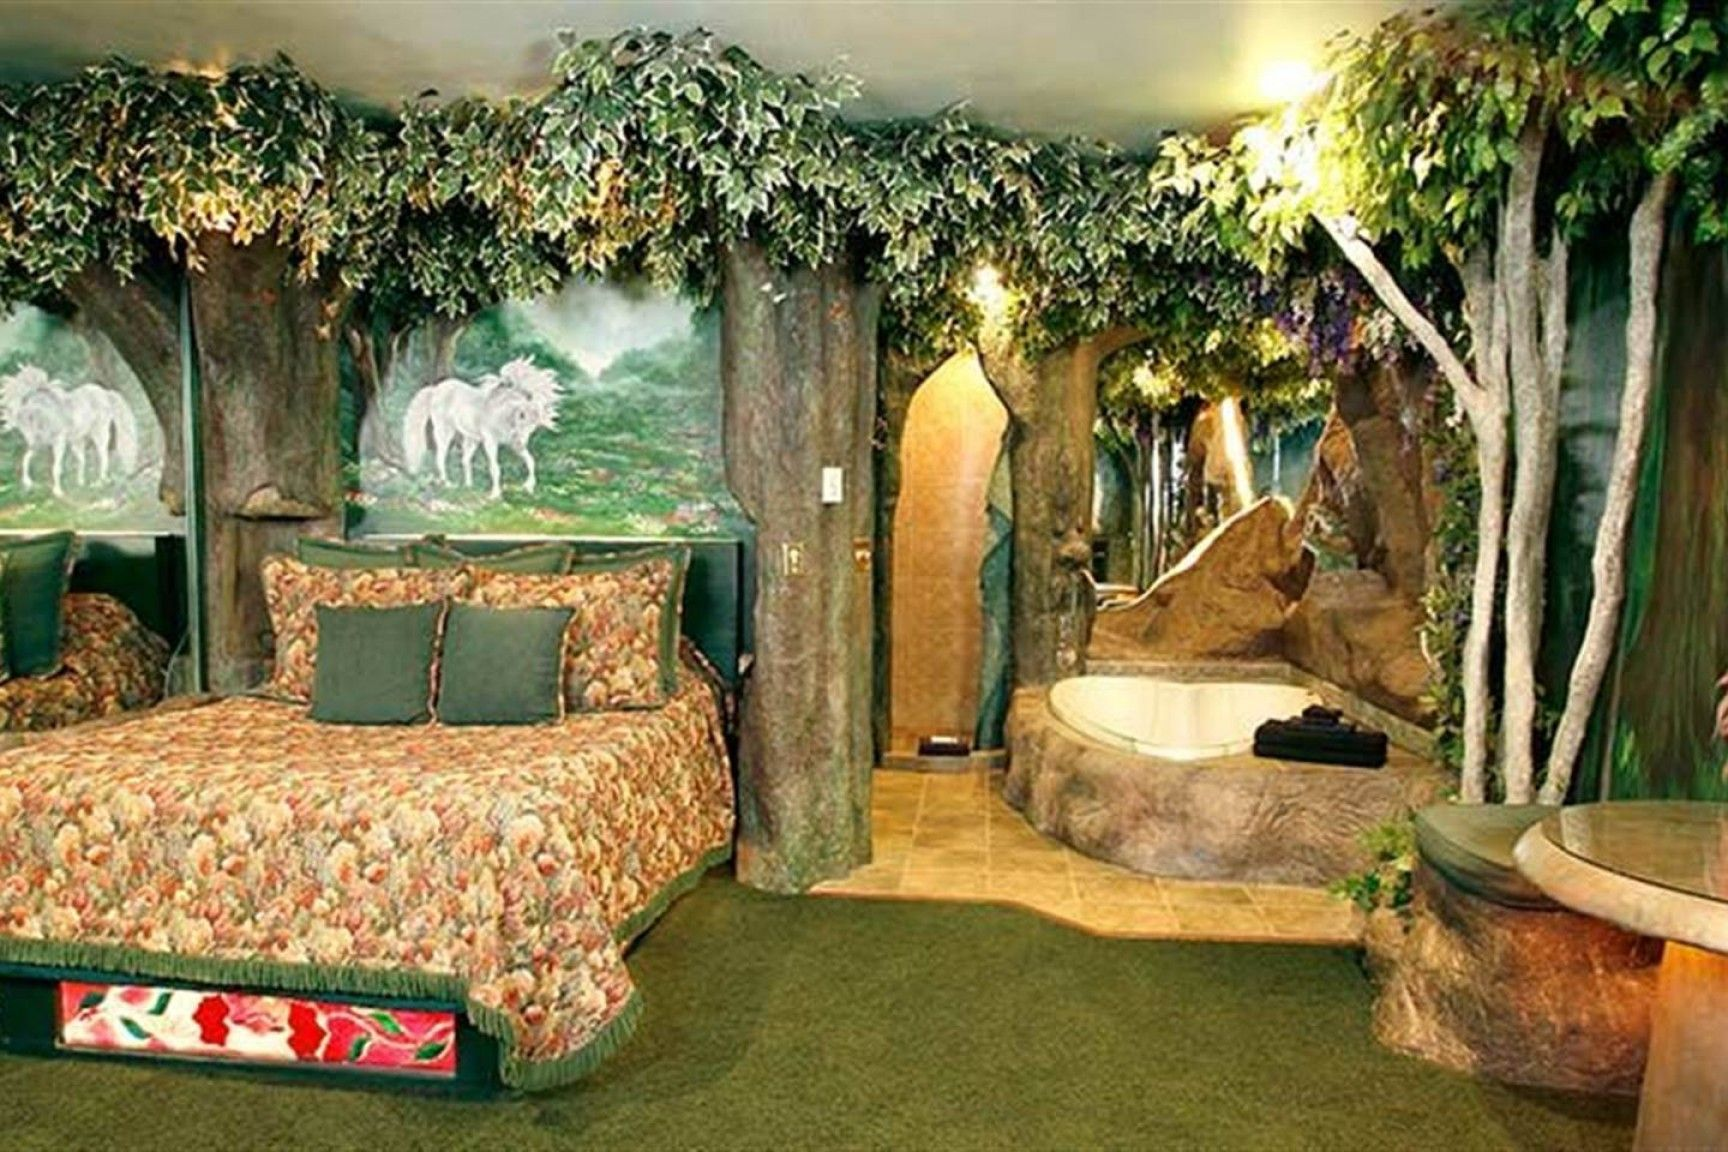 Discover The Magic In This Delightful Enchanted Forest Themed Room Mkumodels Forest Theme Bedrooms Enchanted Forest Bedroom Forest Bedroom